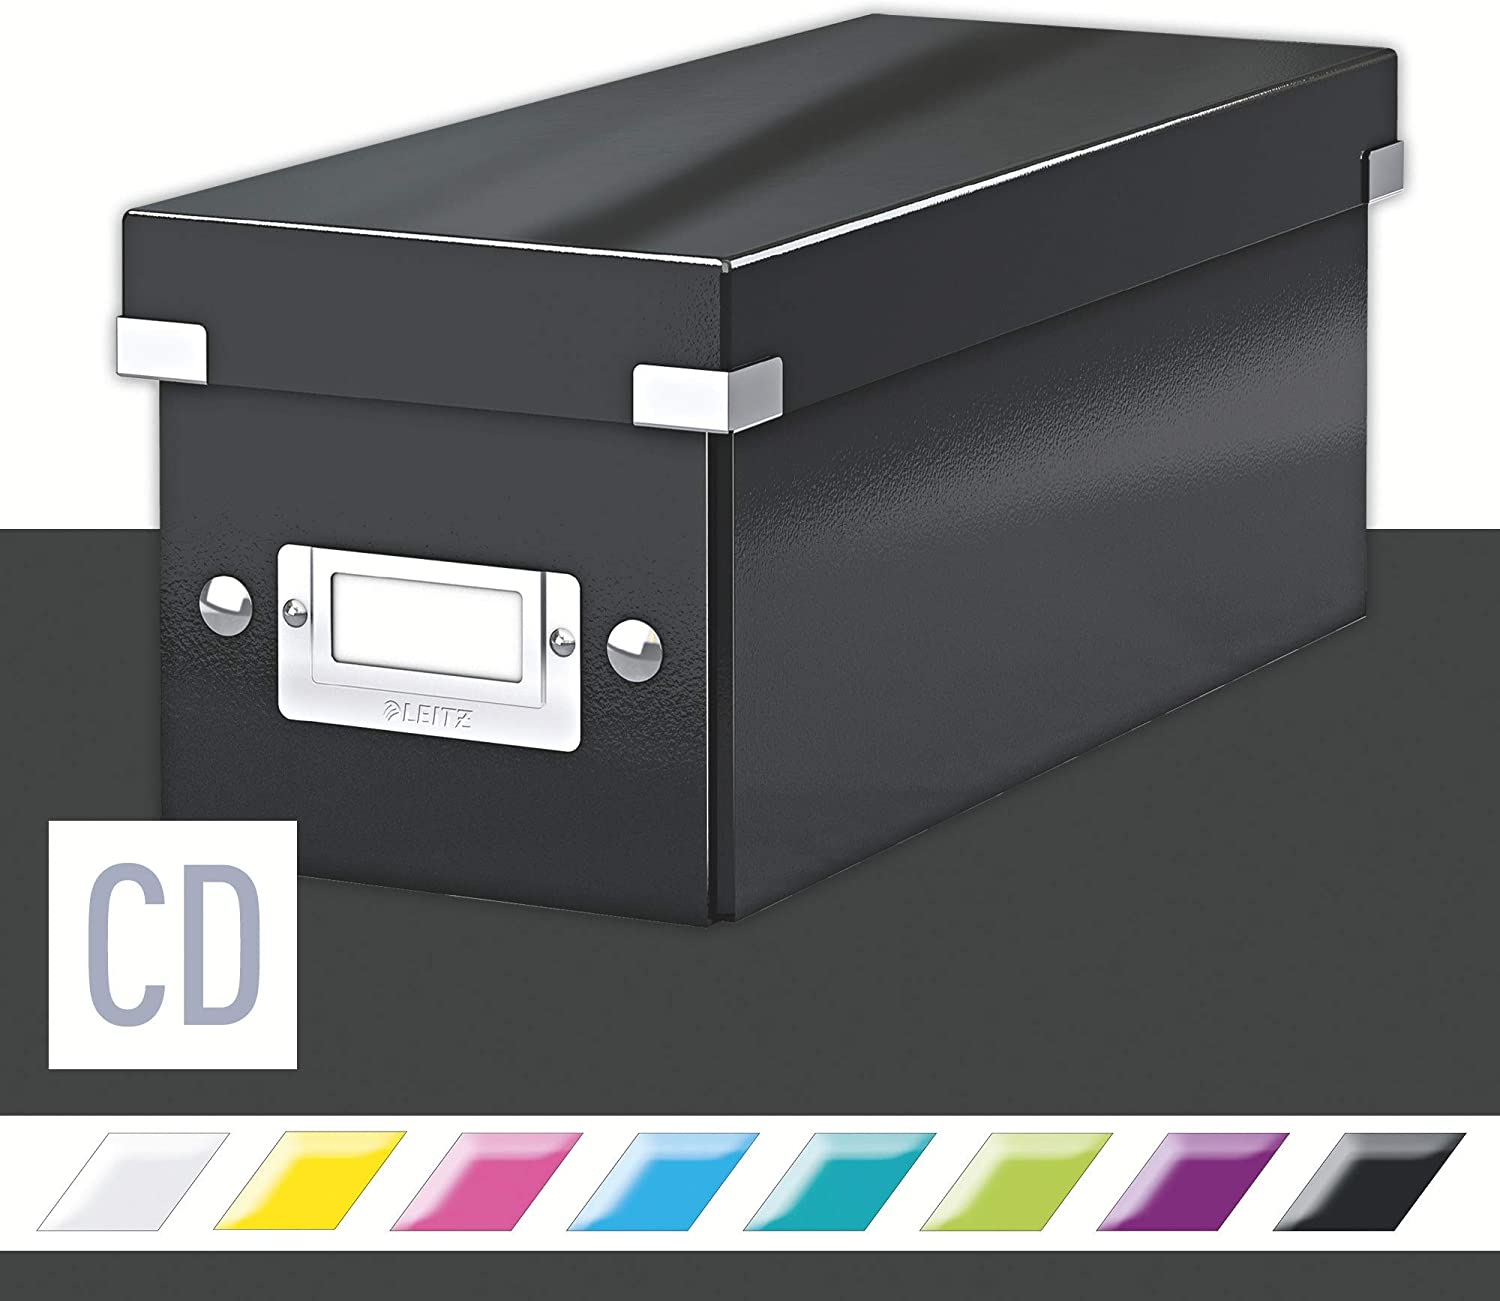 Leitz CD Storage Box, Black, Click and Store Range, 60410095